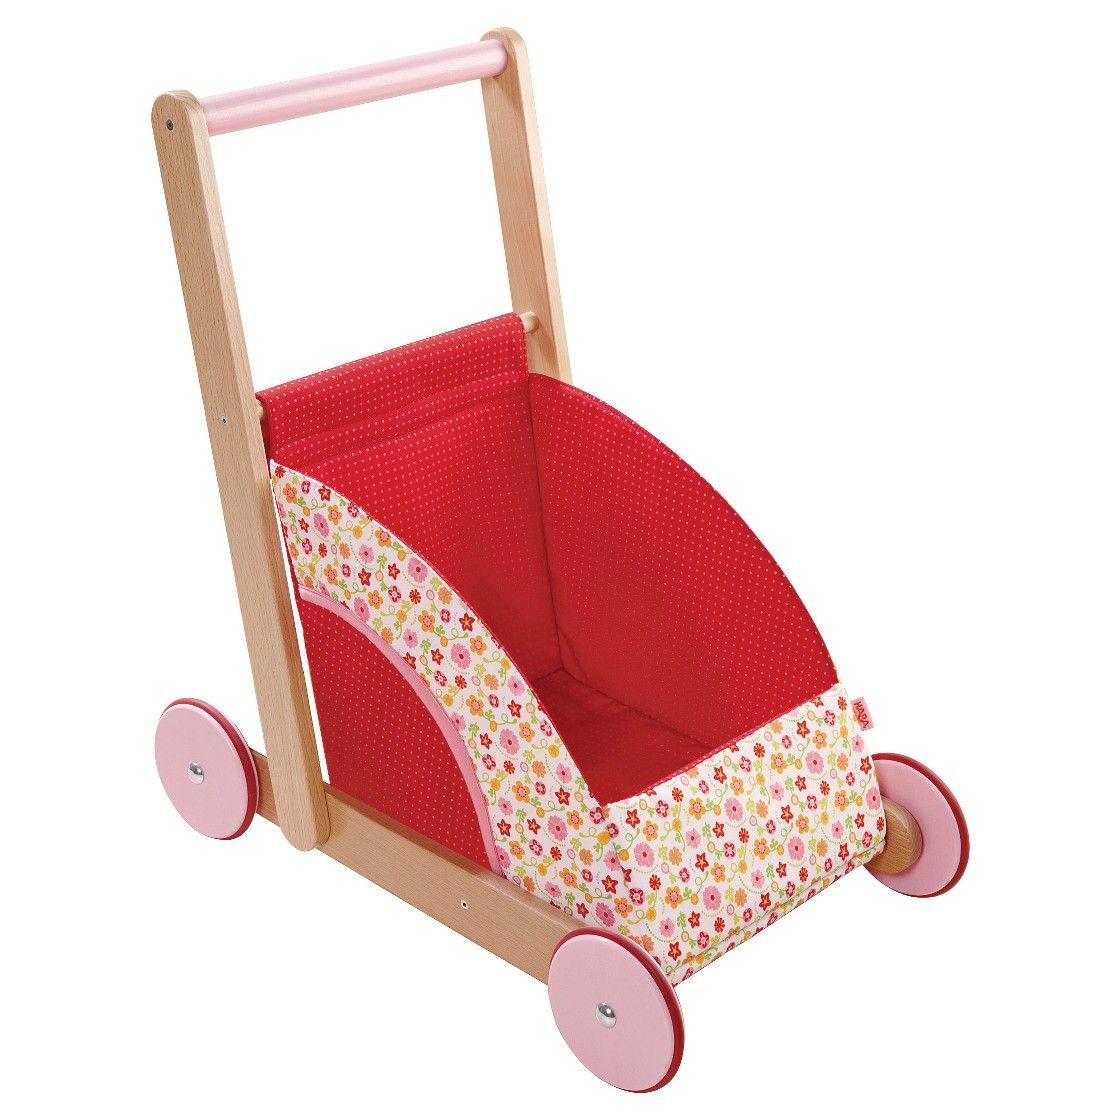 HABA Summer Meadow Doll Pram Dolls prams, Dolls, Wooden